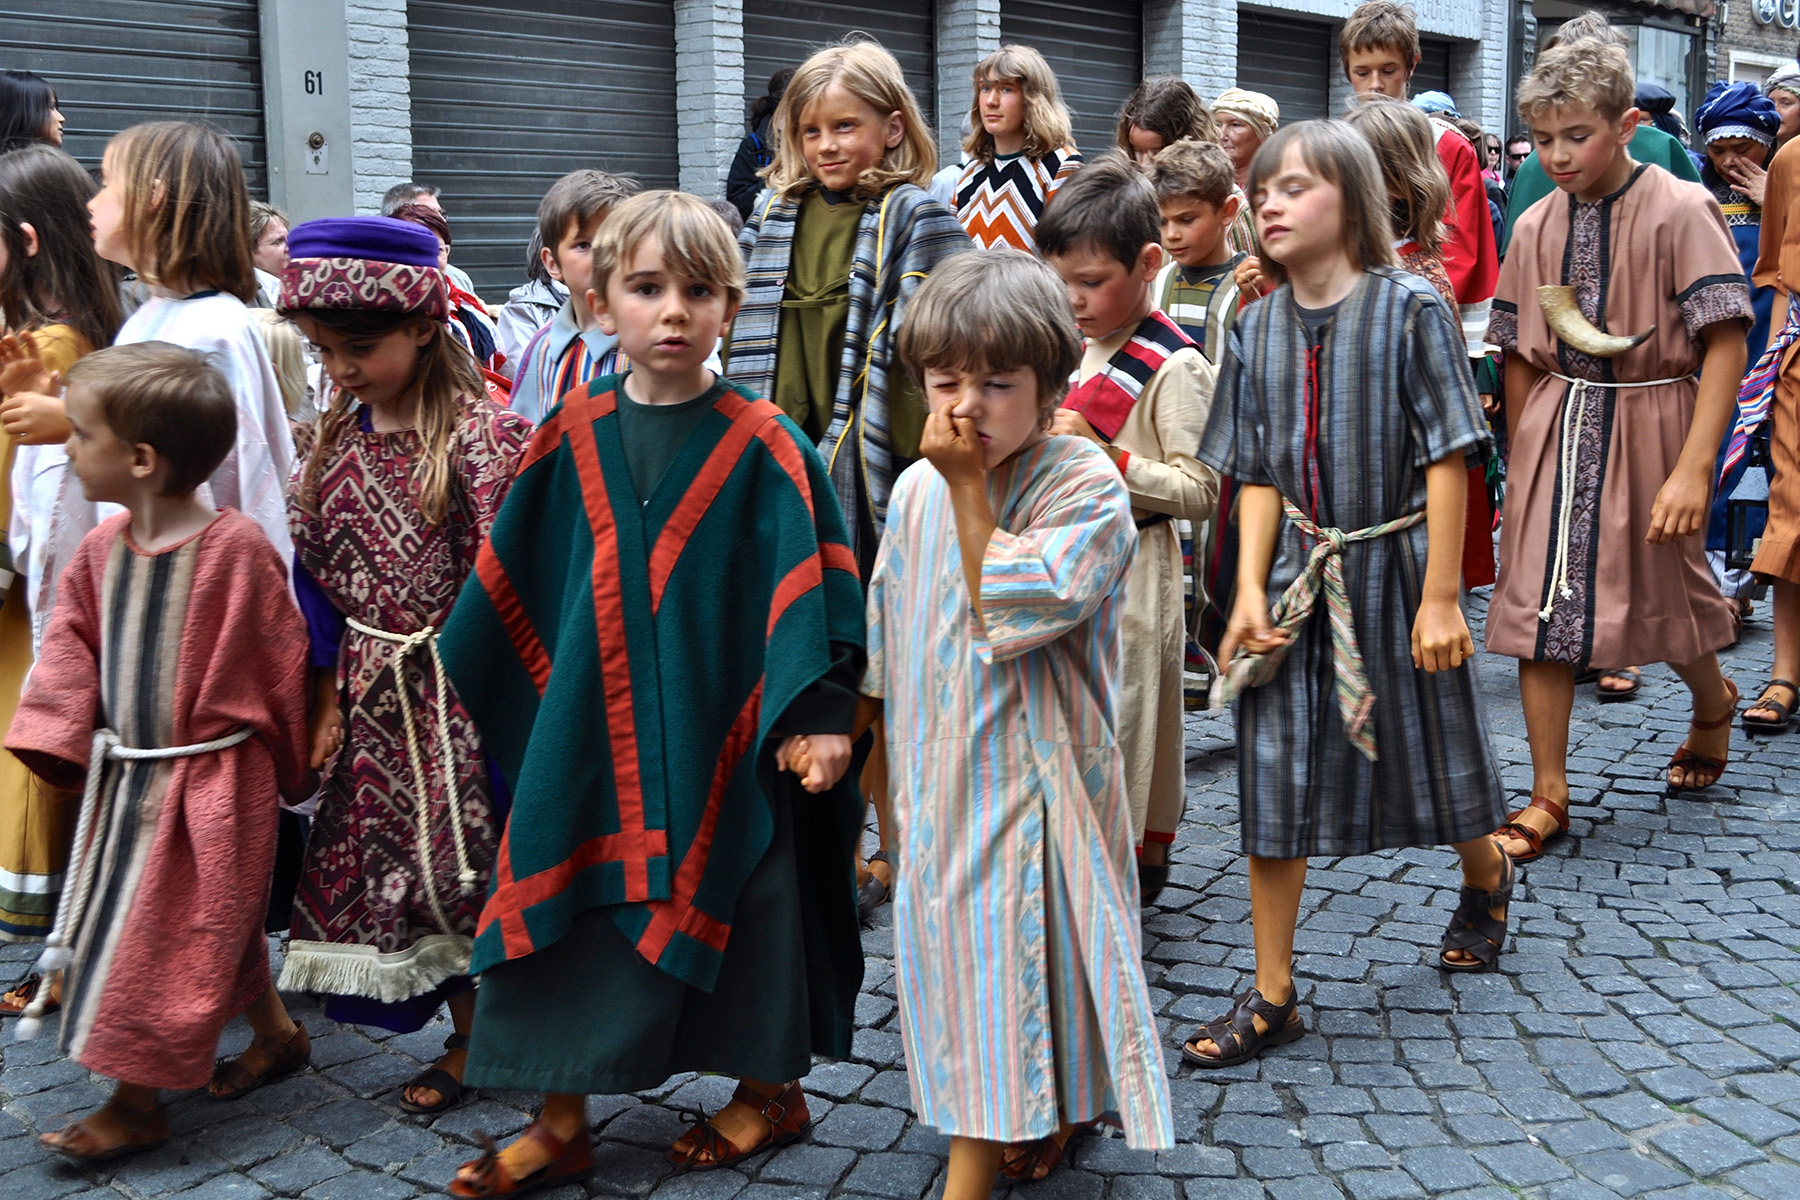 Kids participating in the Bloedprocessie in Brugge